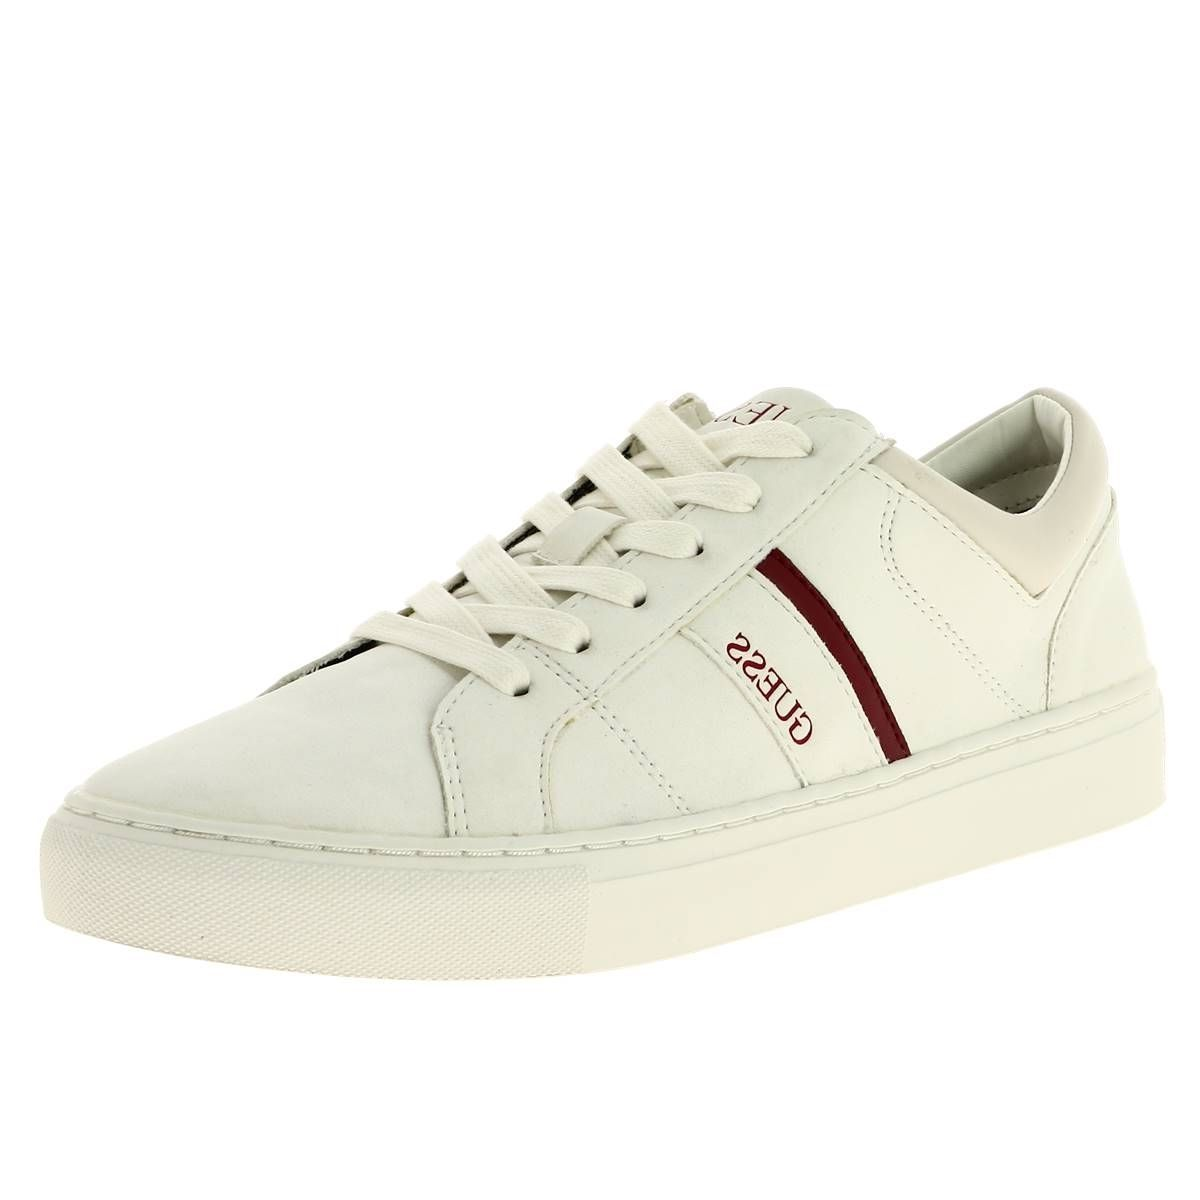 Guess homme liam blanc1132702_2